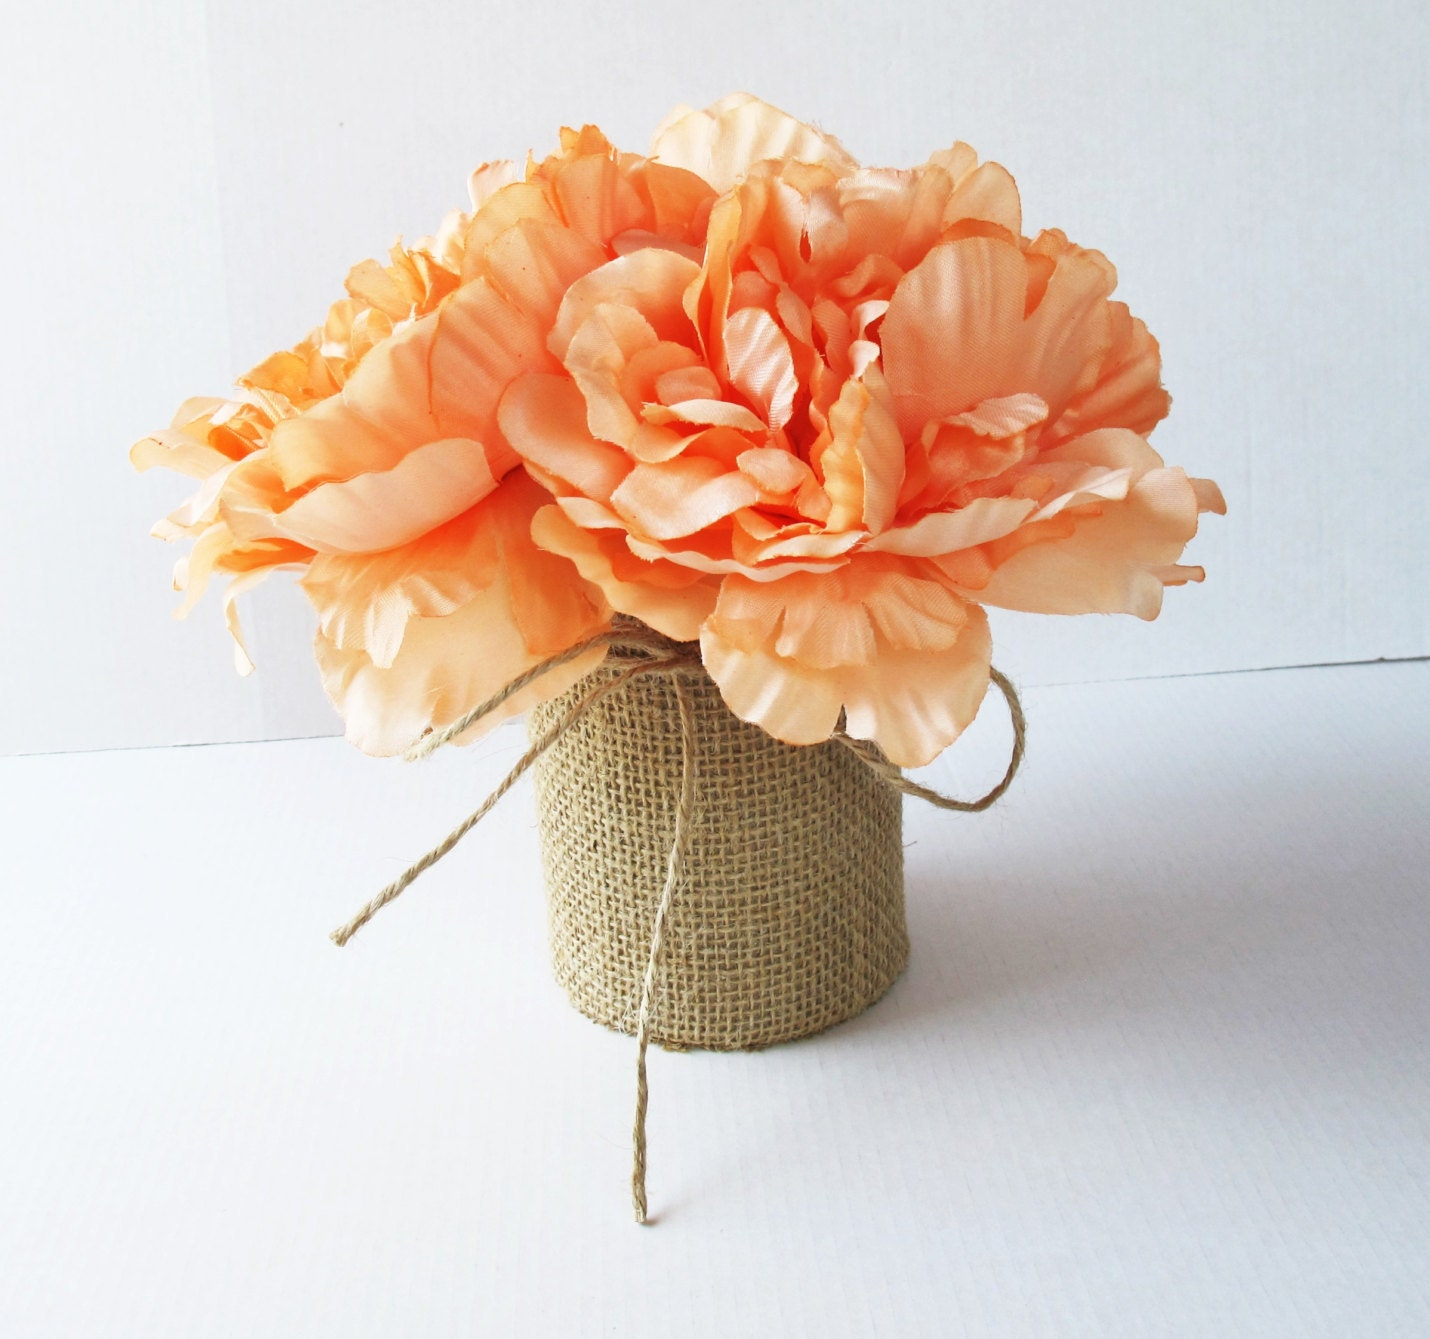 #B83313 Wedding Table Decor Creamy Peonies Decoration Soft Orange 5283 decoration table noel orange 1430x1339 px @ aertt.com